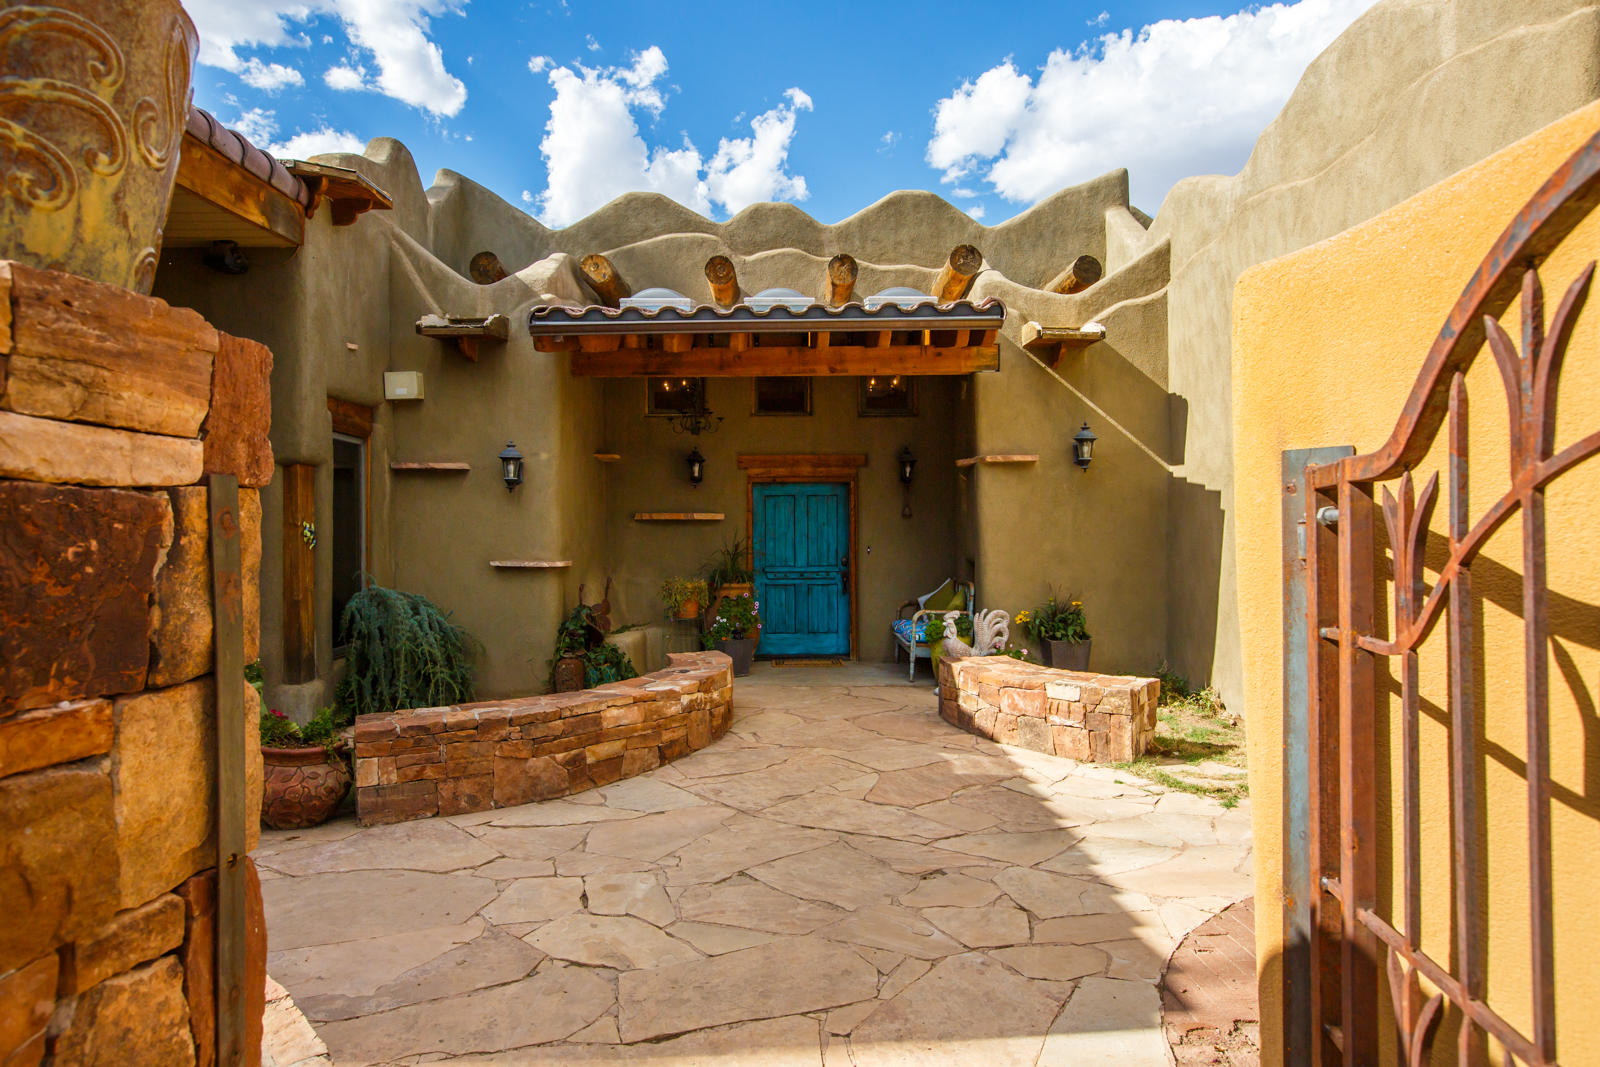 In the North Valley's Los Ranchos de Albuquerque, on a full acre of irrigated land along Rio Grande Blvd, this custom, one-of-a kind home and its guardian lizard await you. Walk through the partially covered courtyard, and upon entry to the home you get a sense of spaciousness, whimsy, and Southwest artistry, in high beam Viga and Latilla ceilings, exposed adobe and diamond plaster walls, artistic mosaics, and stone floor. Multiple living spaces, indoor and out, make it easy for generations to live together. The loft wing has a separate entrance with a bedroom, bath, living space, and room to add a kitchenette. This adobe home is efficient, with radiant in floor heat, and refrigerated air to complement passive nighttime cooling. Garage workshop with a half bath and rooftop deck caps it off